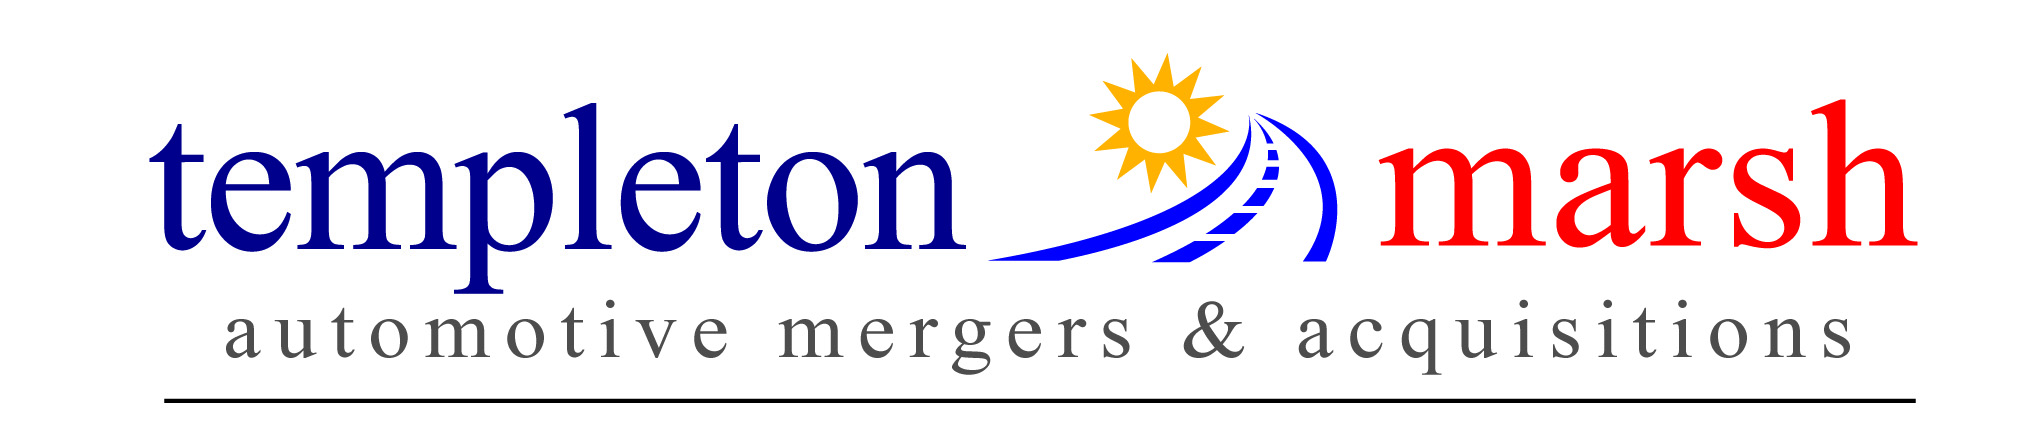 templeton marsh automotive mergers and acquisitions